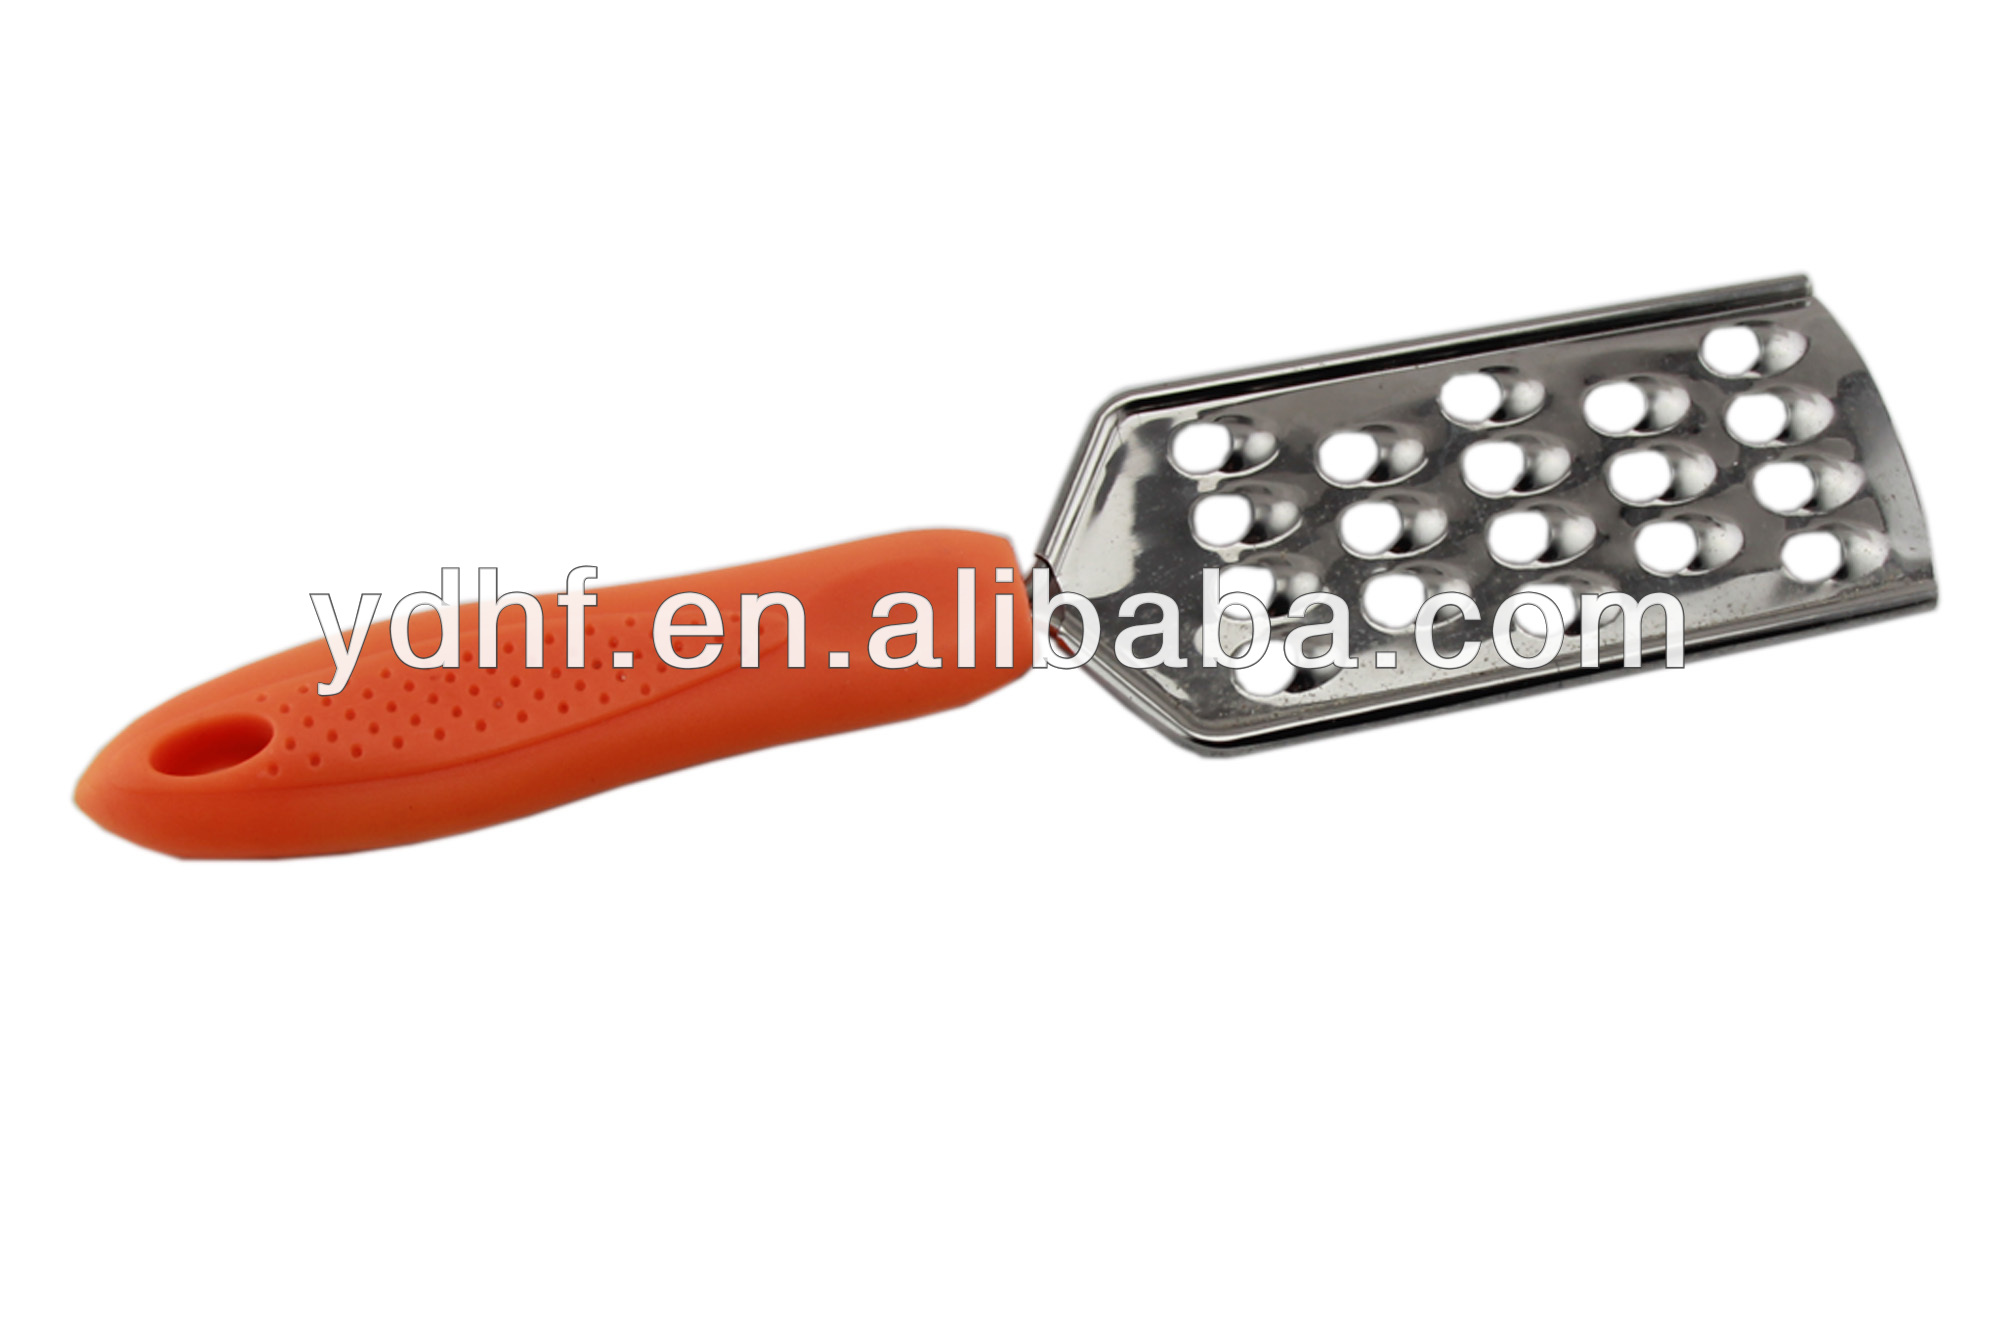 M486 stainless steel shredded ginger knife,vegetable tool,vegetables plane